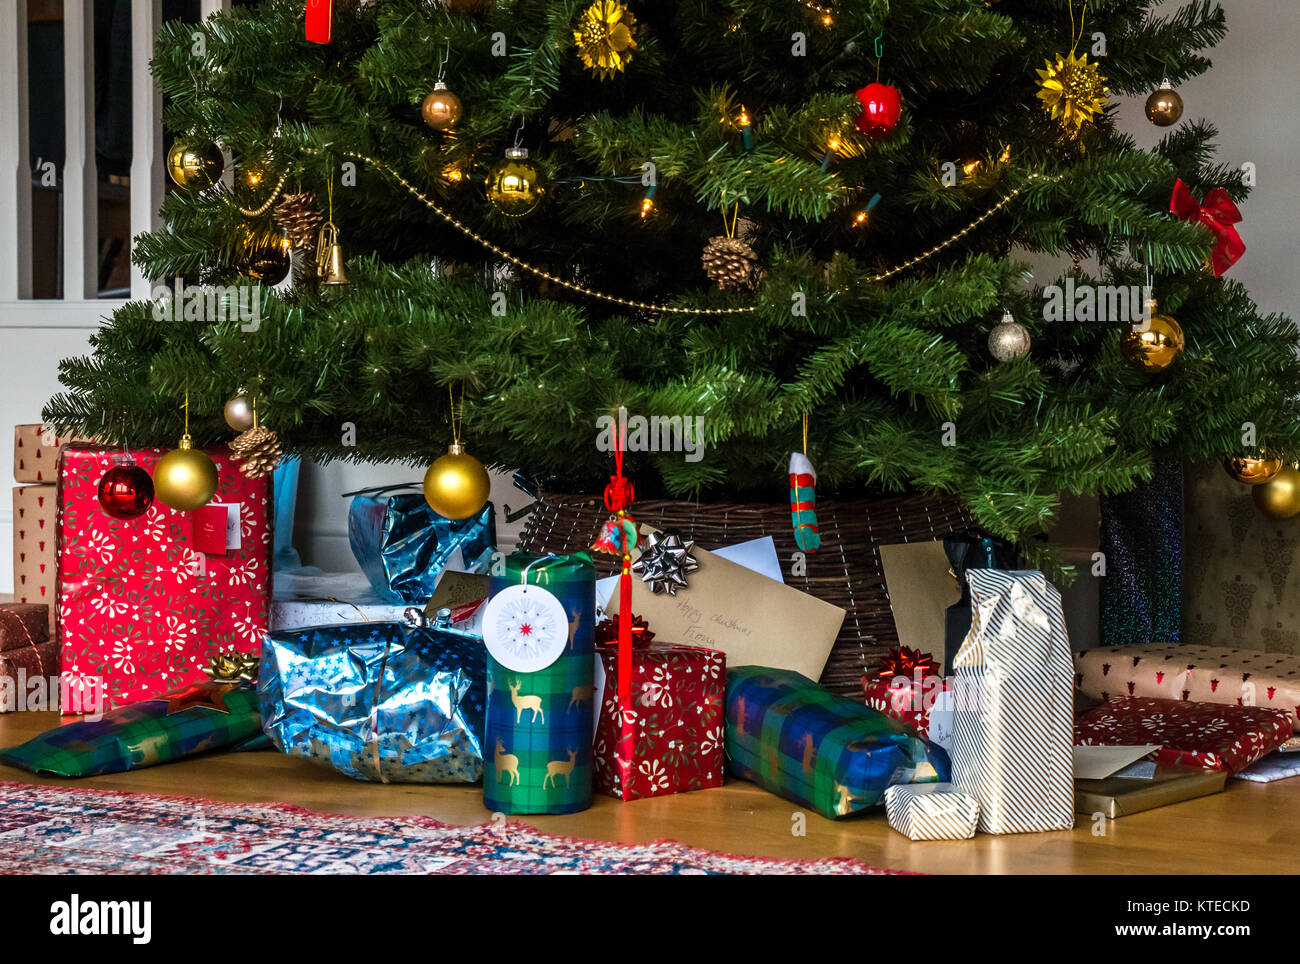 Wrapped Christmas presents under a Christmas tree in a family sitting room with a Persian rug - Stock Image